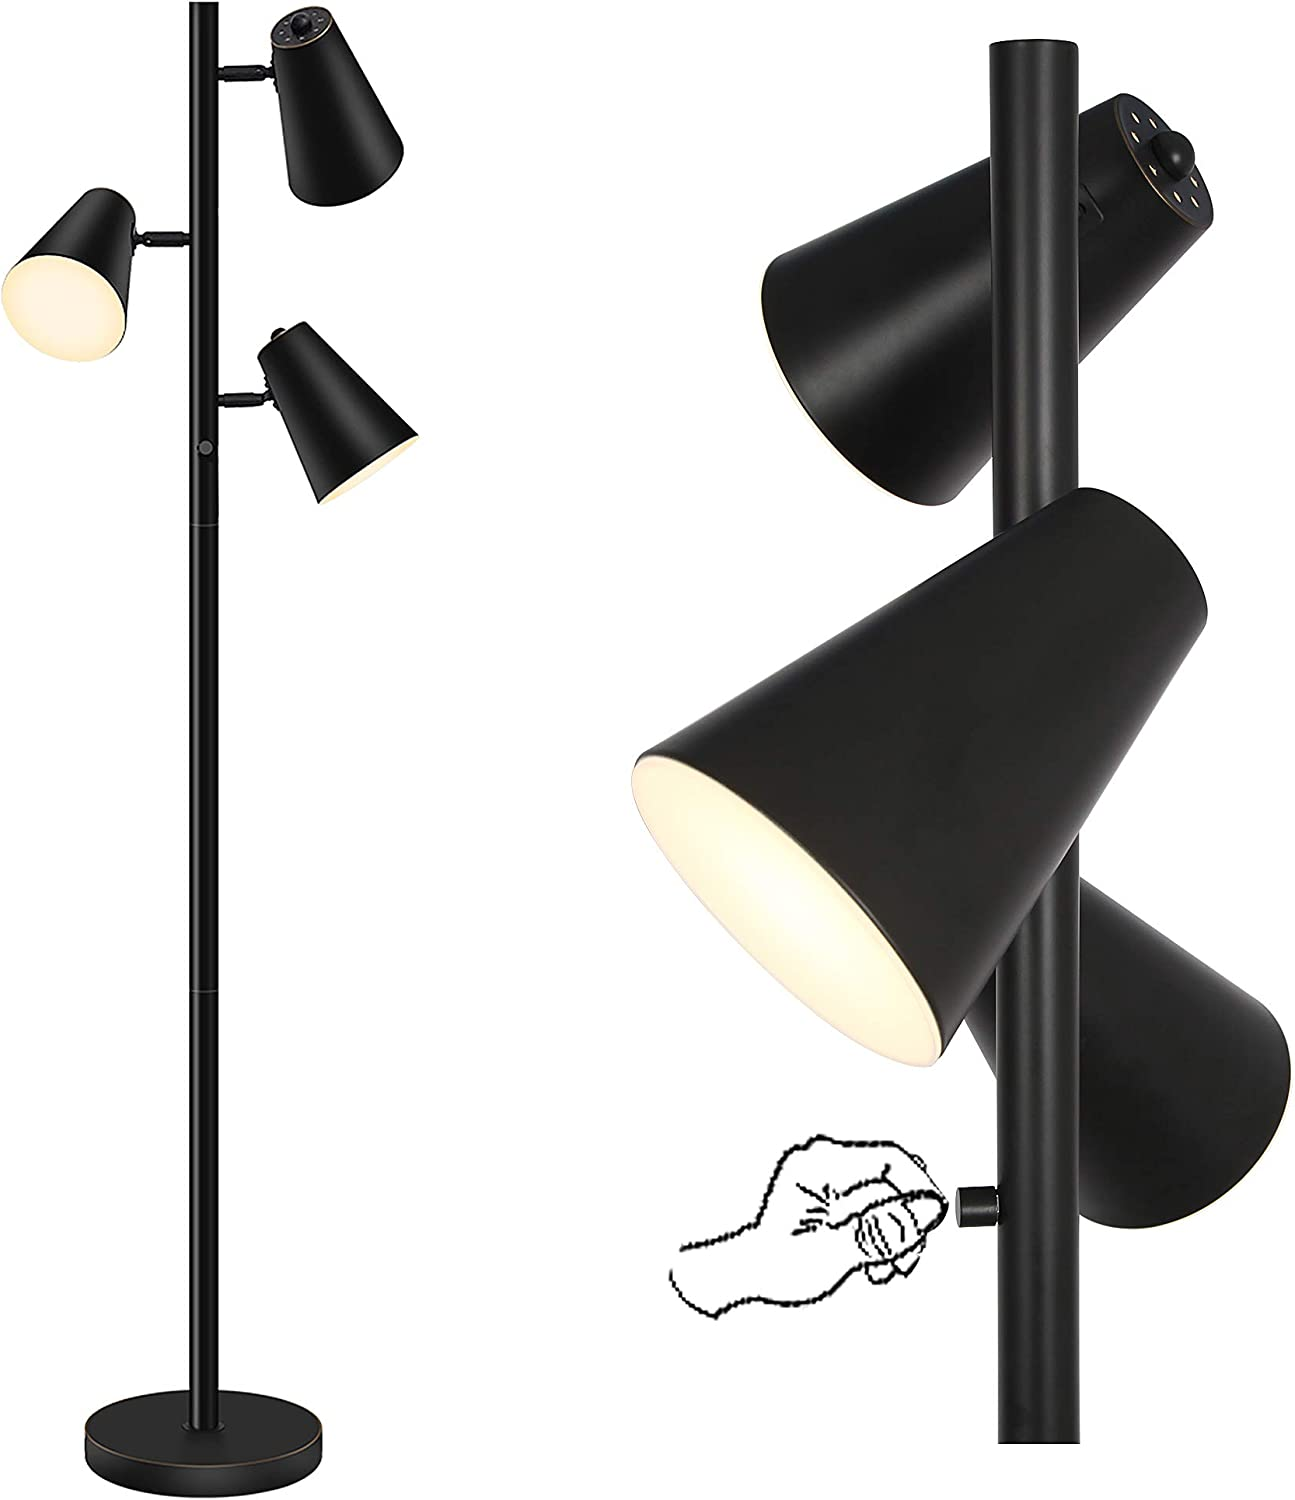 Tree Led Floor Lamp for Mid Century, Modern, Contemporary and Industrial Decor, Bright Reading,3 Way Standing Floor Lamp with 3 Adjustable Metal Shades for Living Room & Bedroom, Black